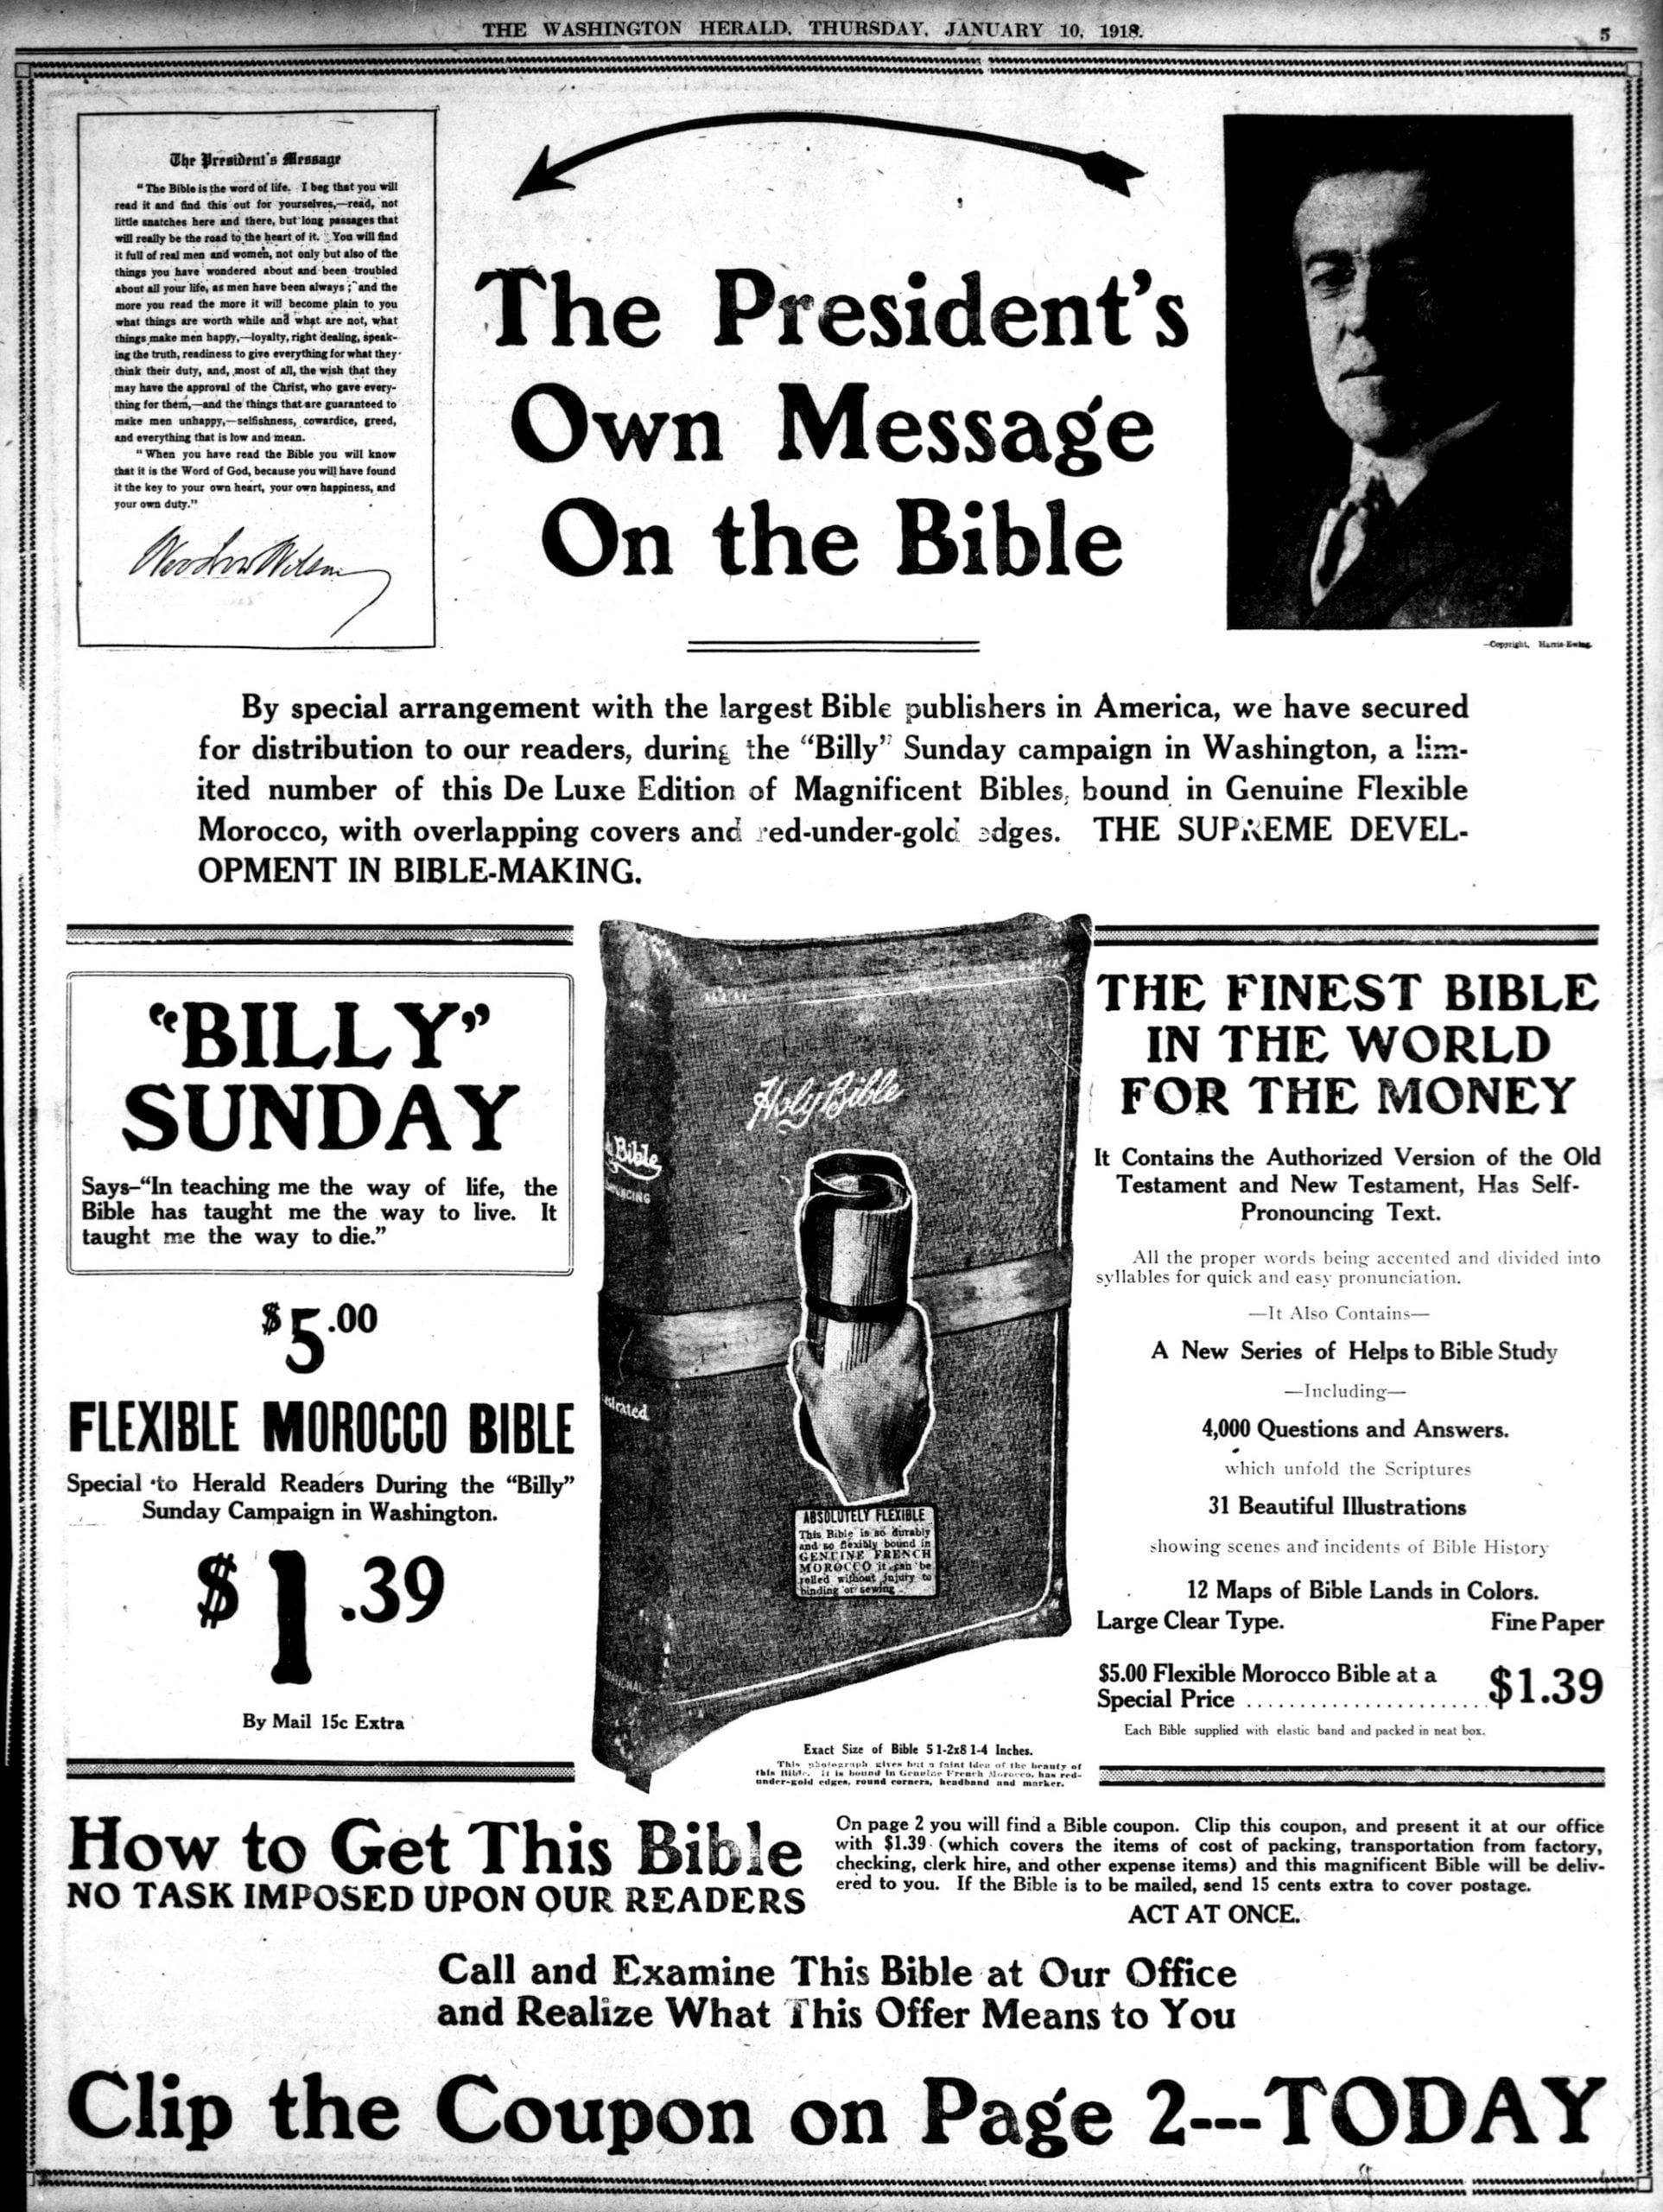 The President's Own Message on the Bible